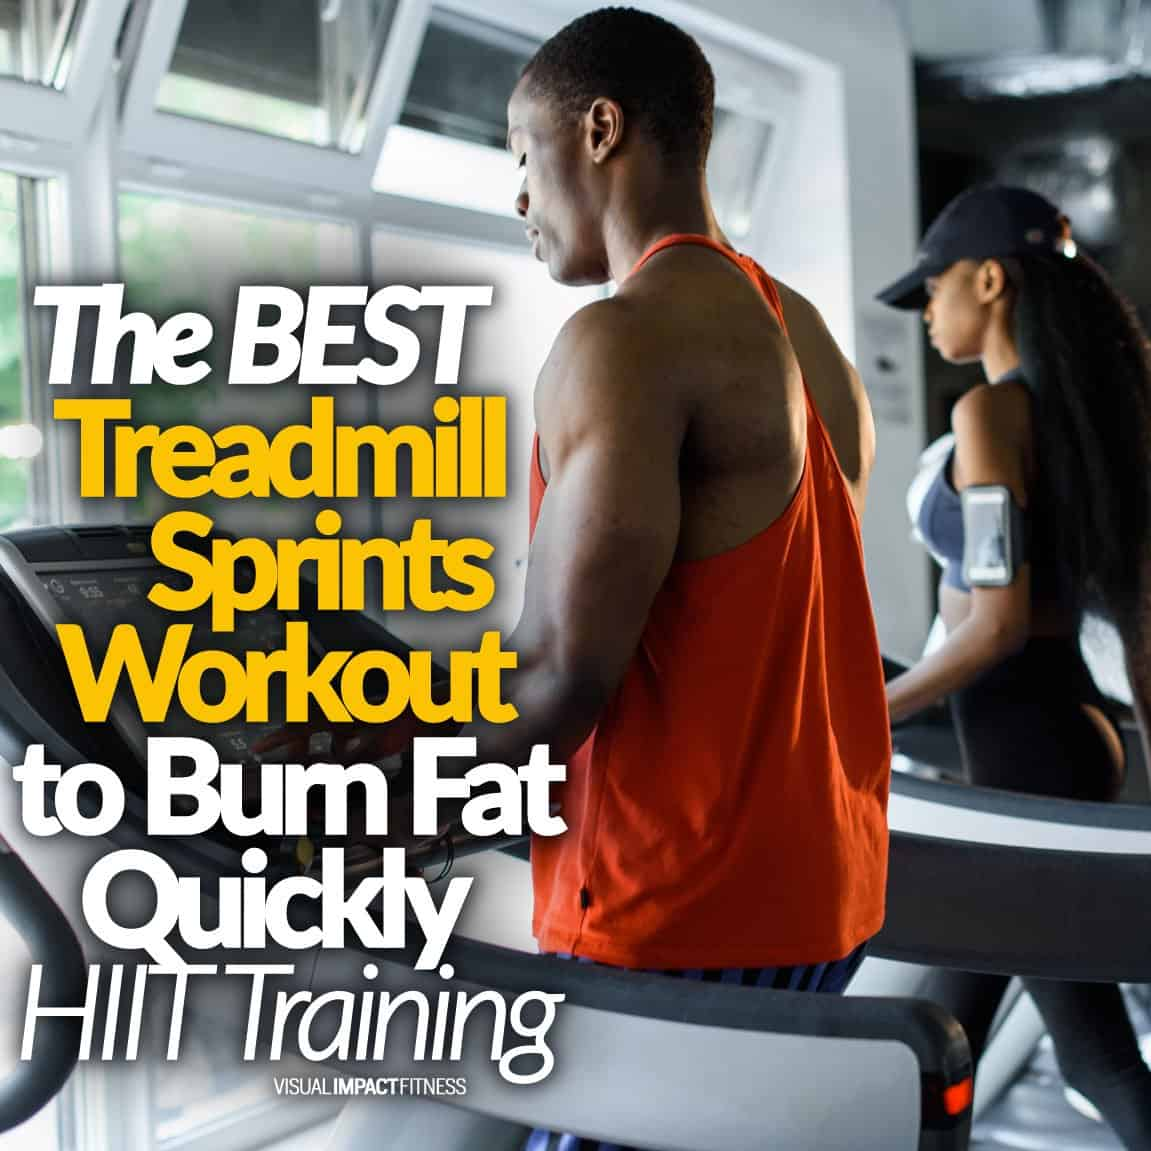 The BEST Treadmill Sprints Workout to Burn Fat Quickly